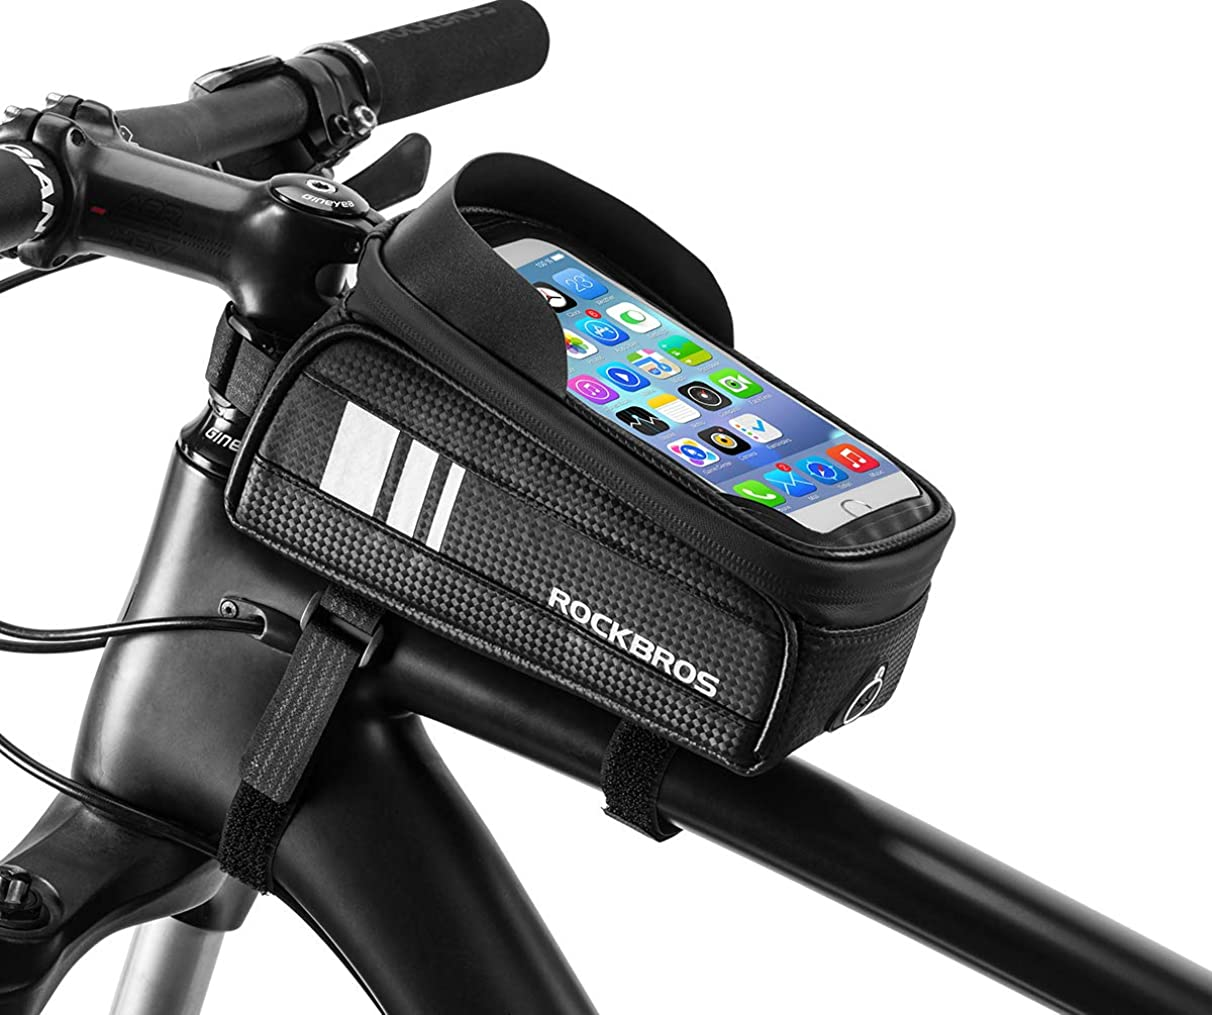 ROCK BROS Bike Phone Bag Waterproof Bicycle Frame Bag Pannier Top Tube Touch Screen Cycling Phone Case Holder for iPhone X XS 8 7 Plus Cellphone Below 6.0 Inches